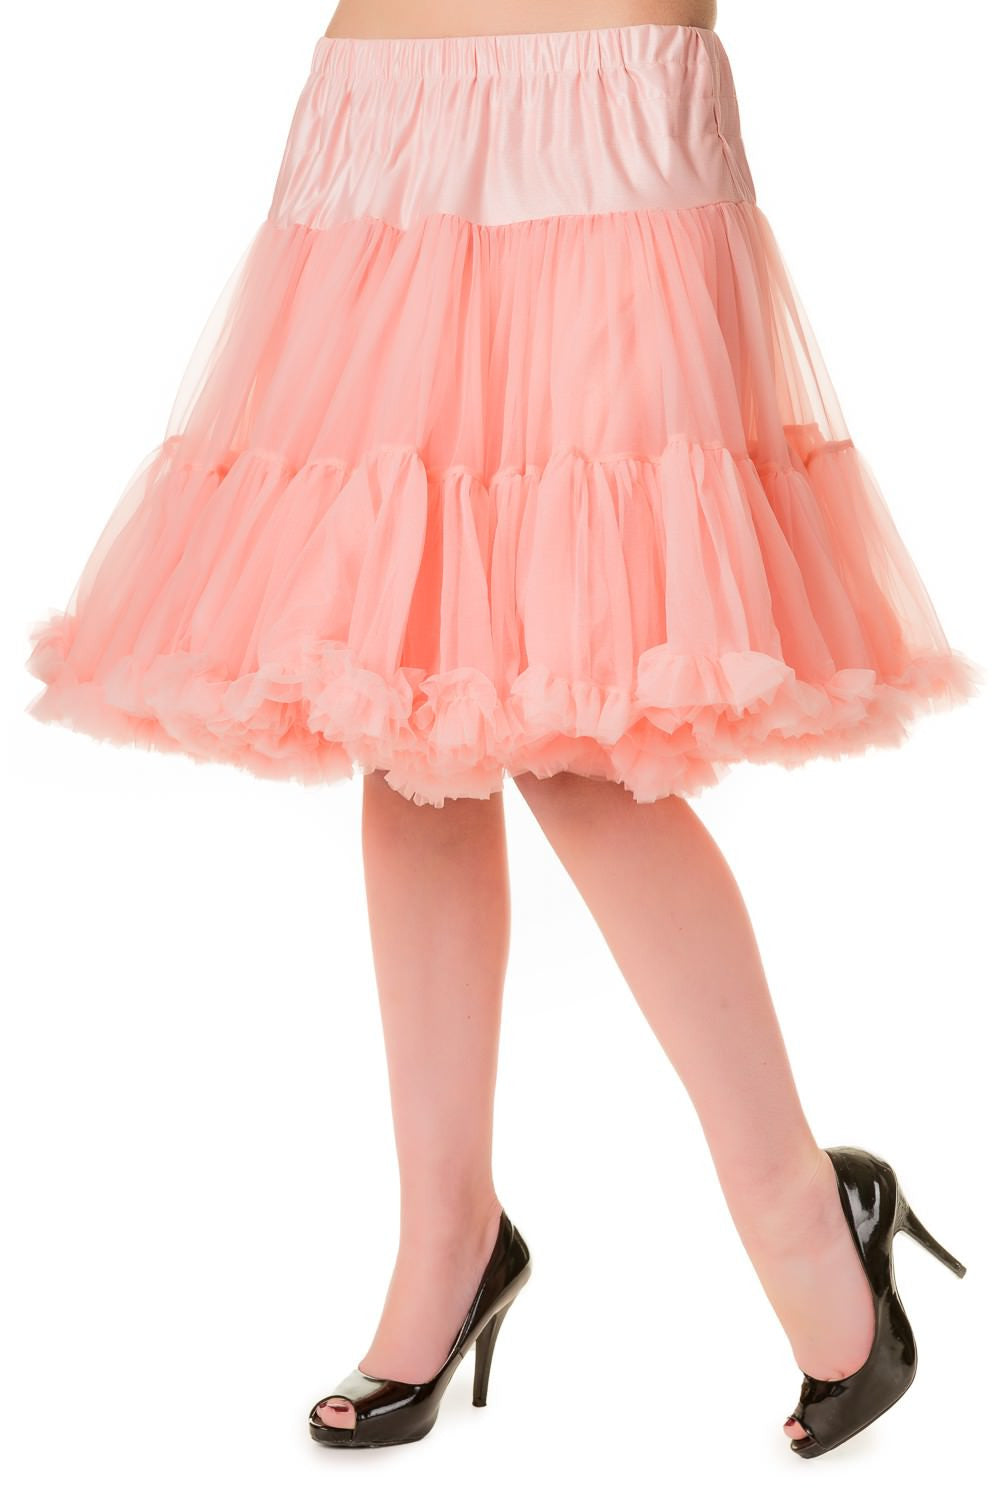 Walkabout Petticoat in Pink